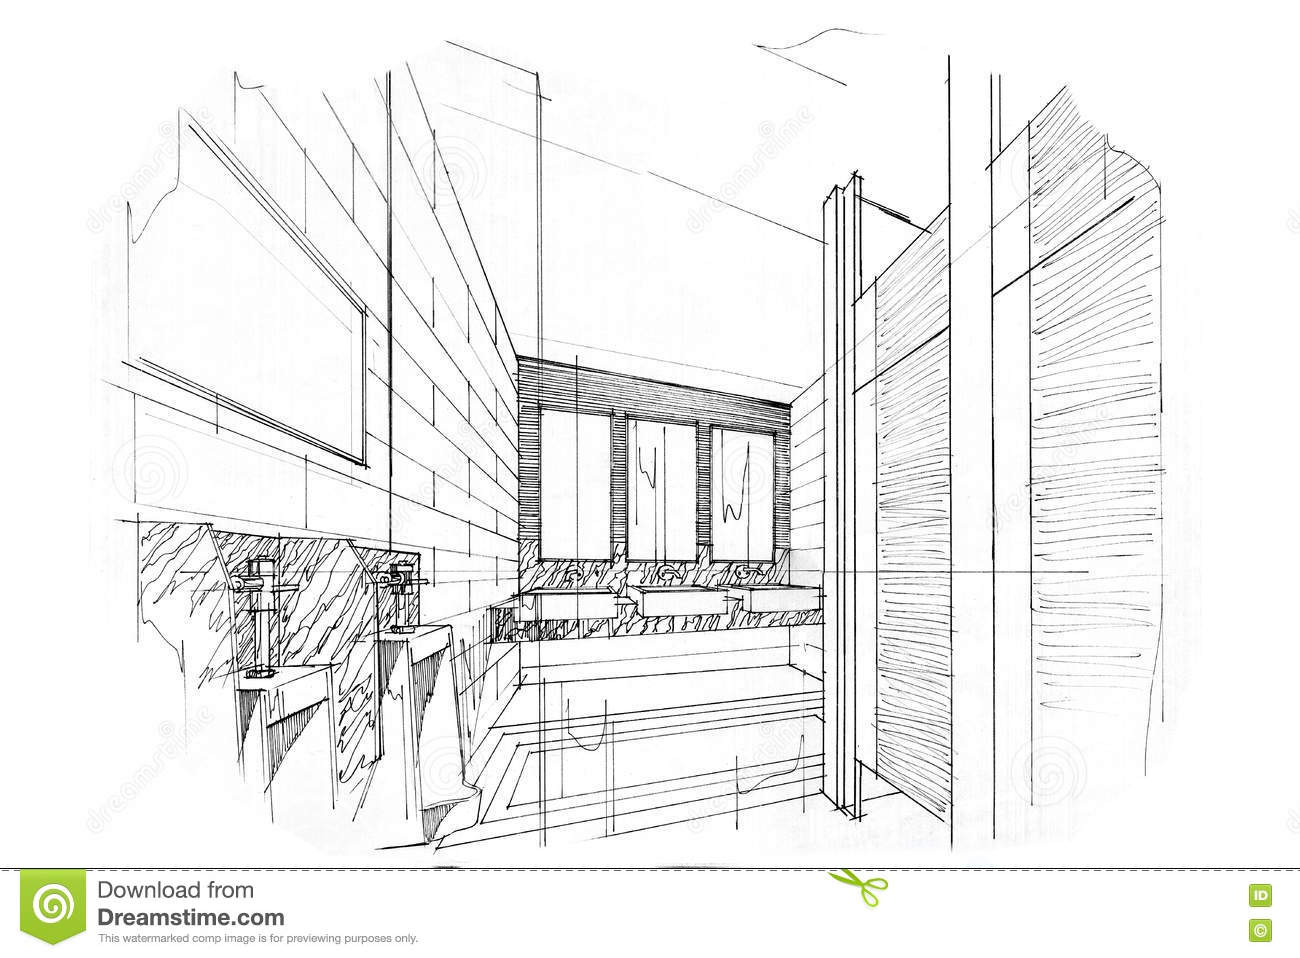 Bathroom perspective drawing - Sketch Perspective Interior Toilet Bathroom Black And White Interior Design